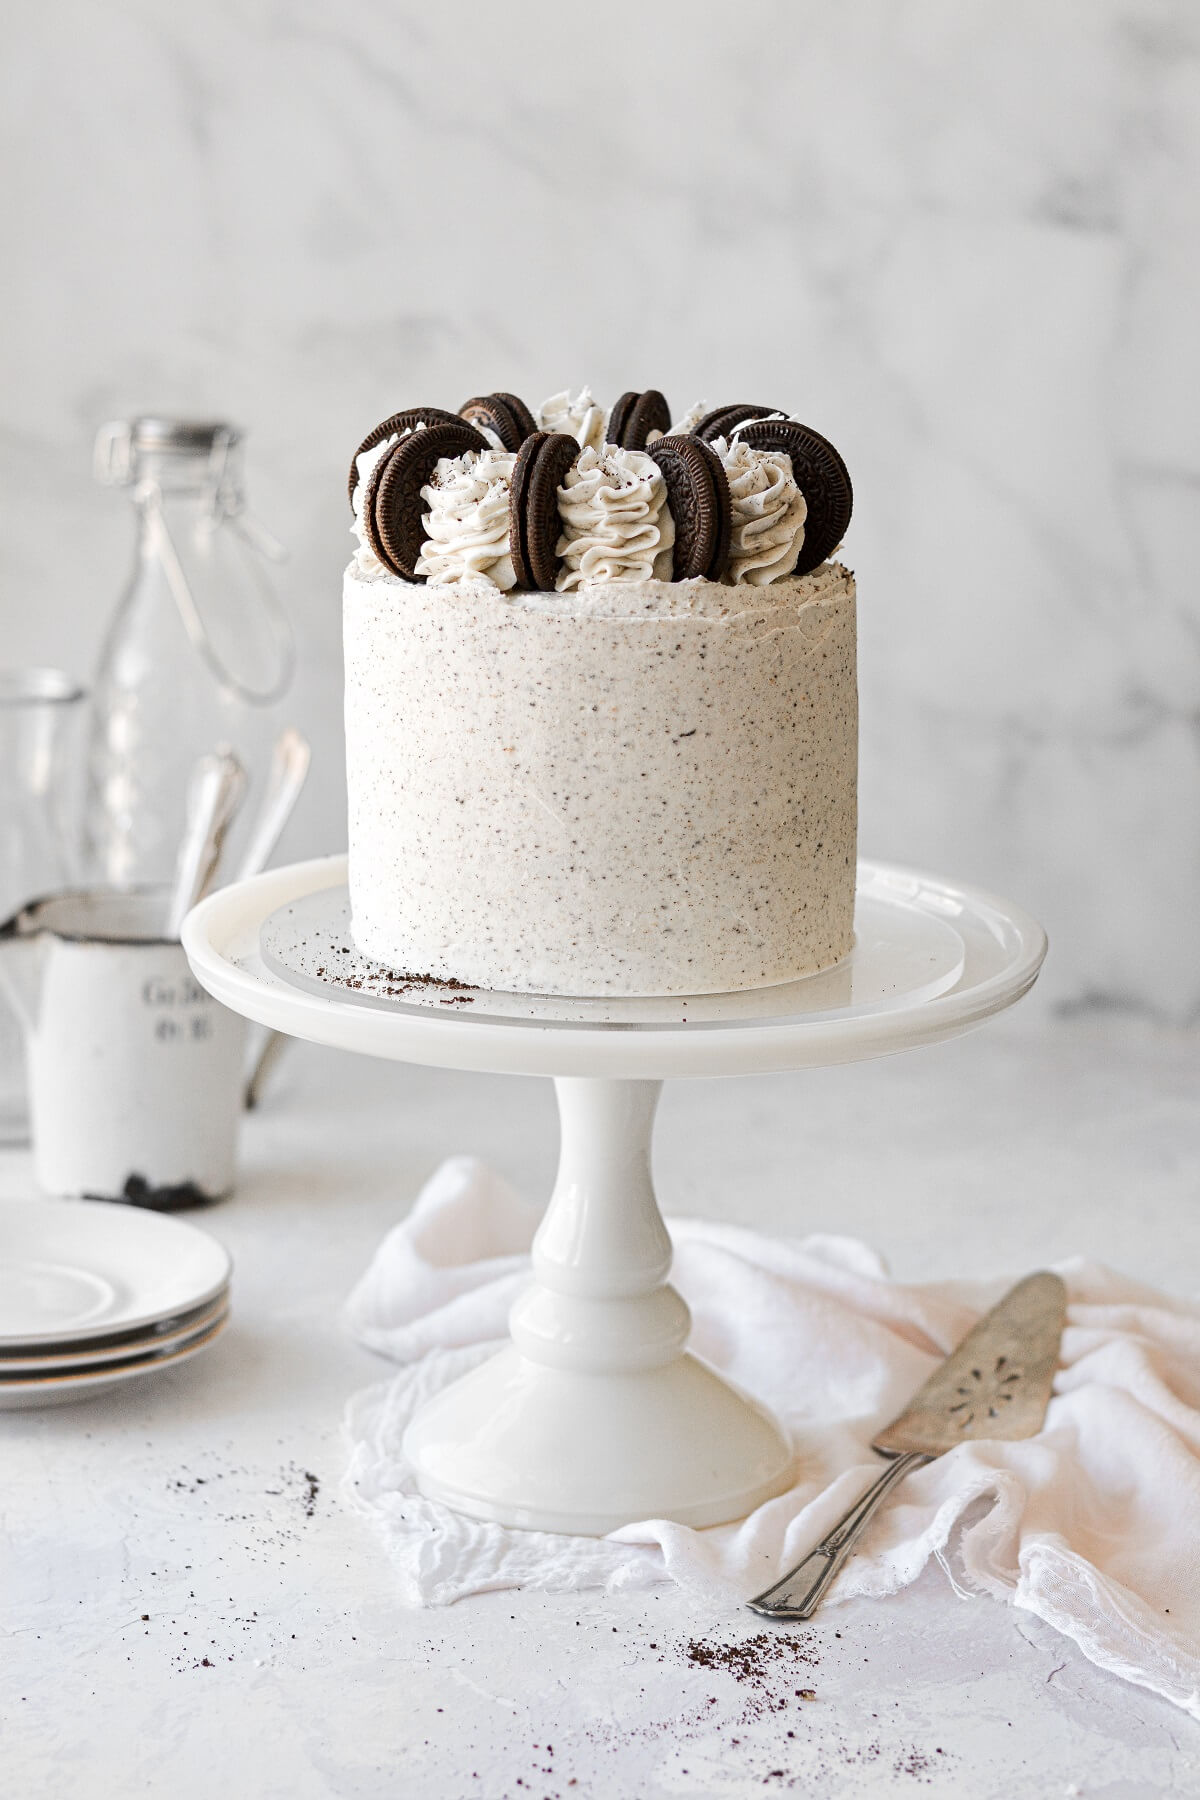 Cookies and cream cake, topped with Oreos and buttercream swirls.